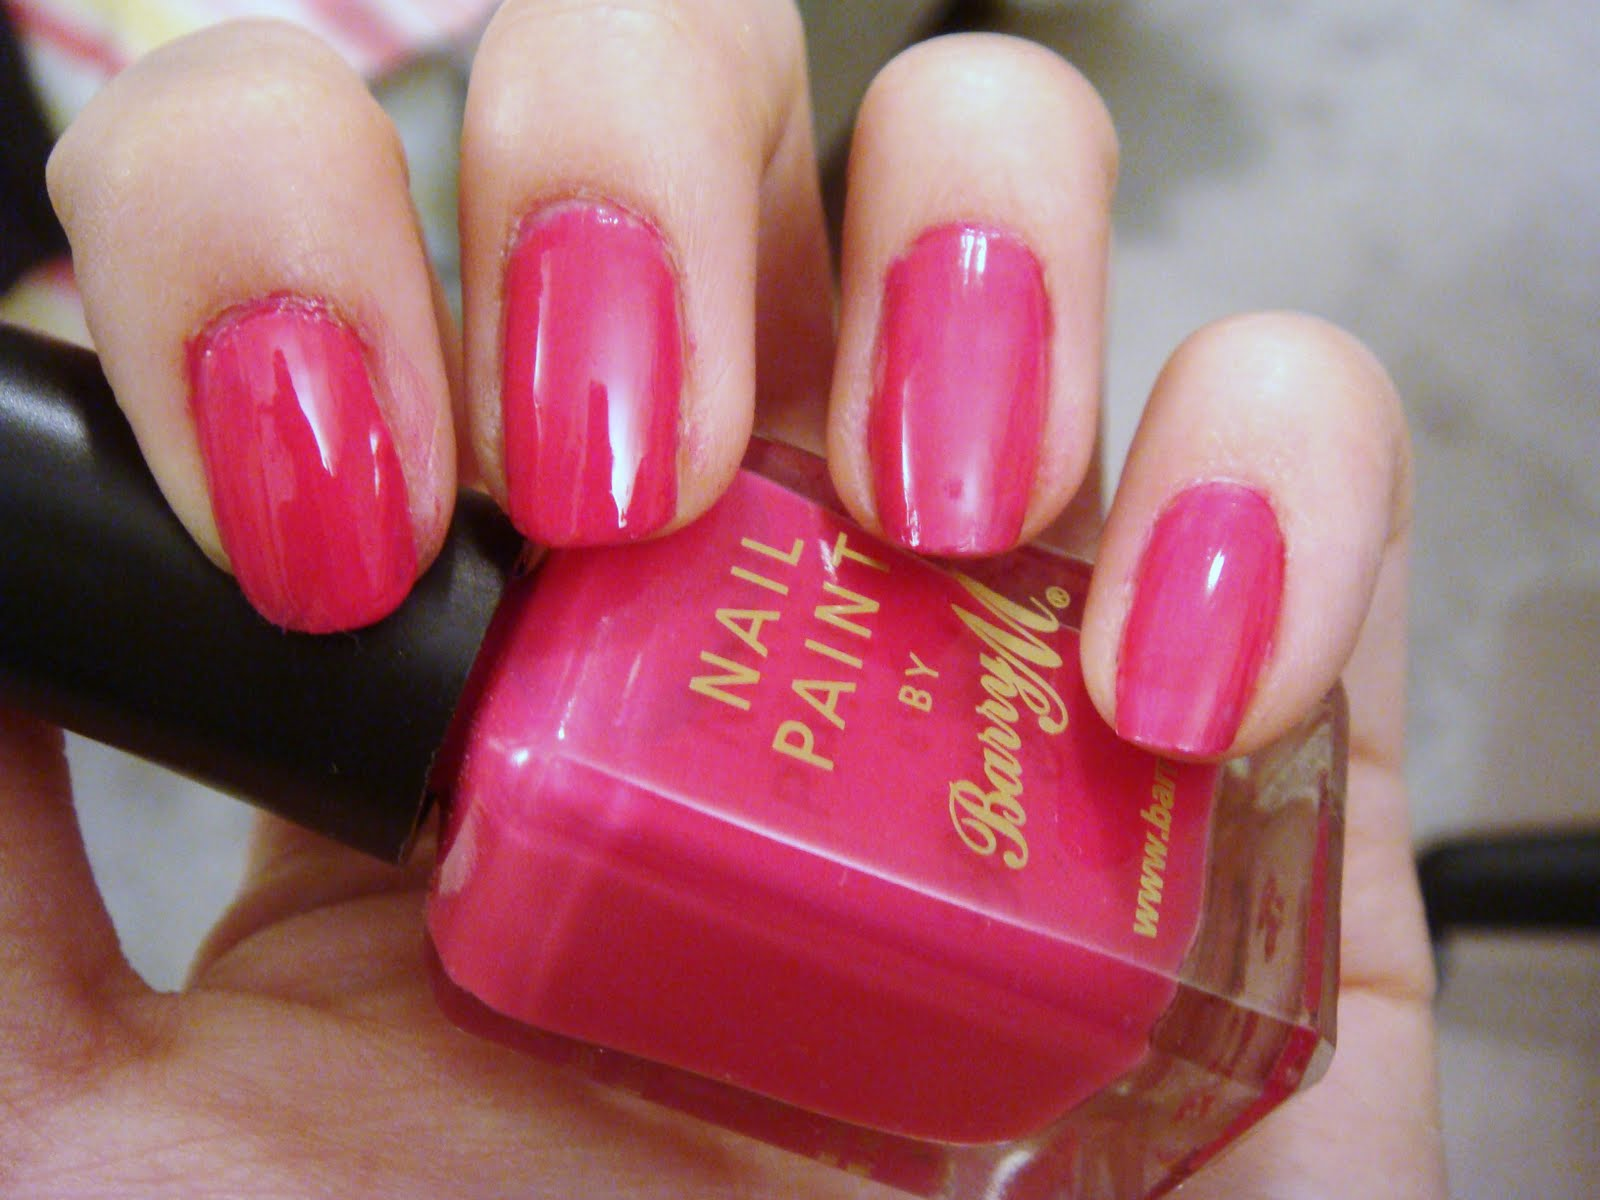 Nail Paint in Shocking Pink